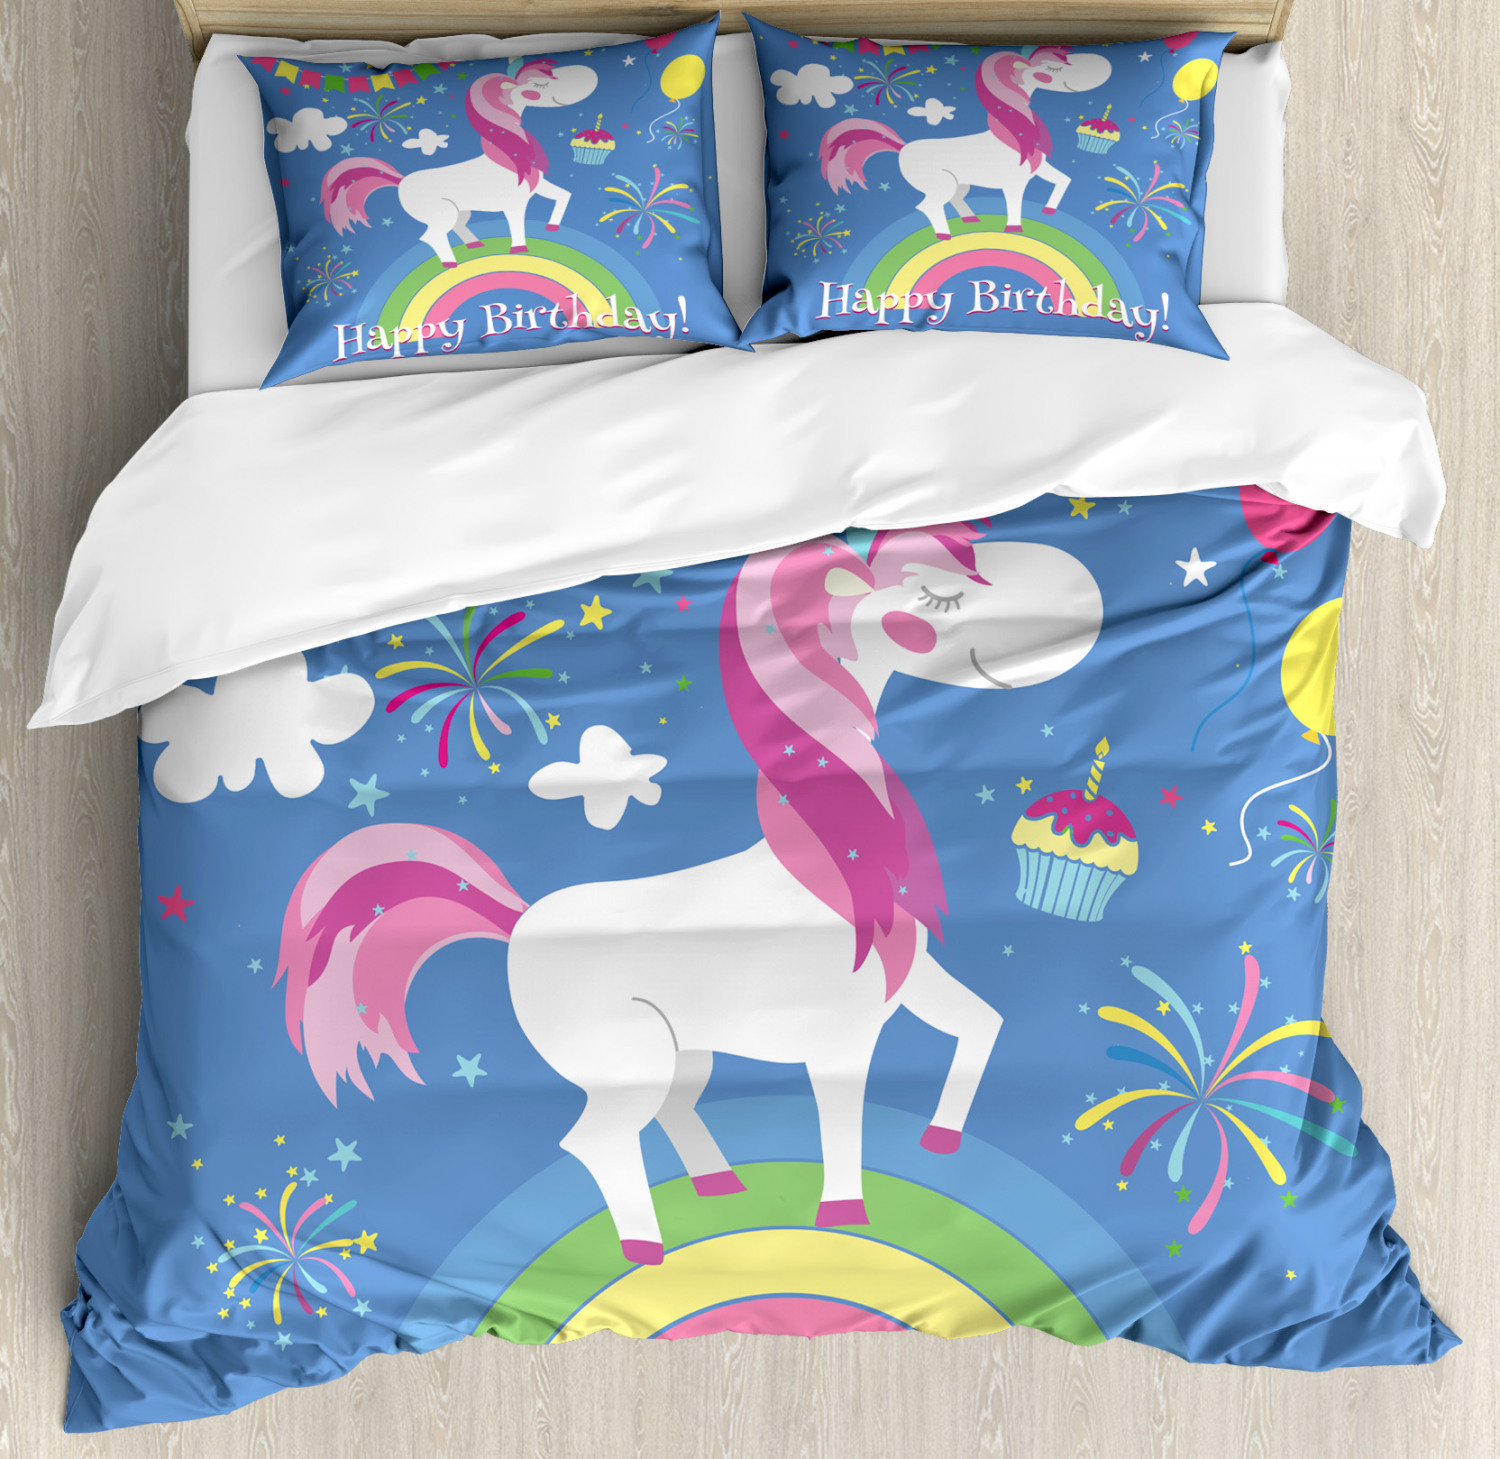 Unicorn Duvet Cover Set Twin Queen King Sizes with Pillow Shams Bedding Decor